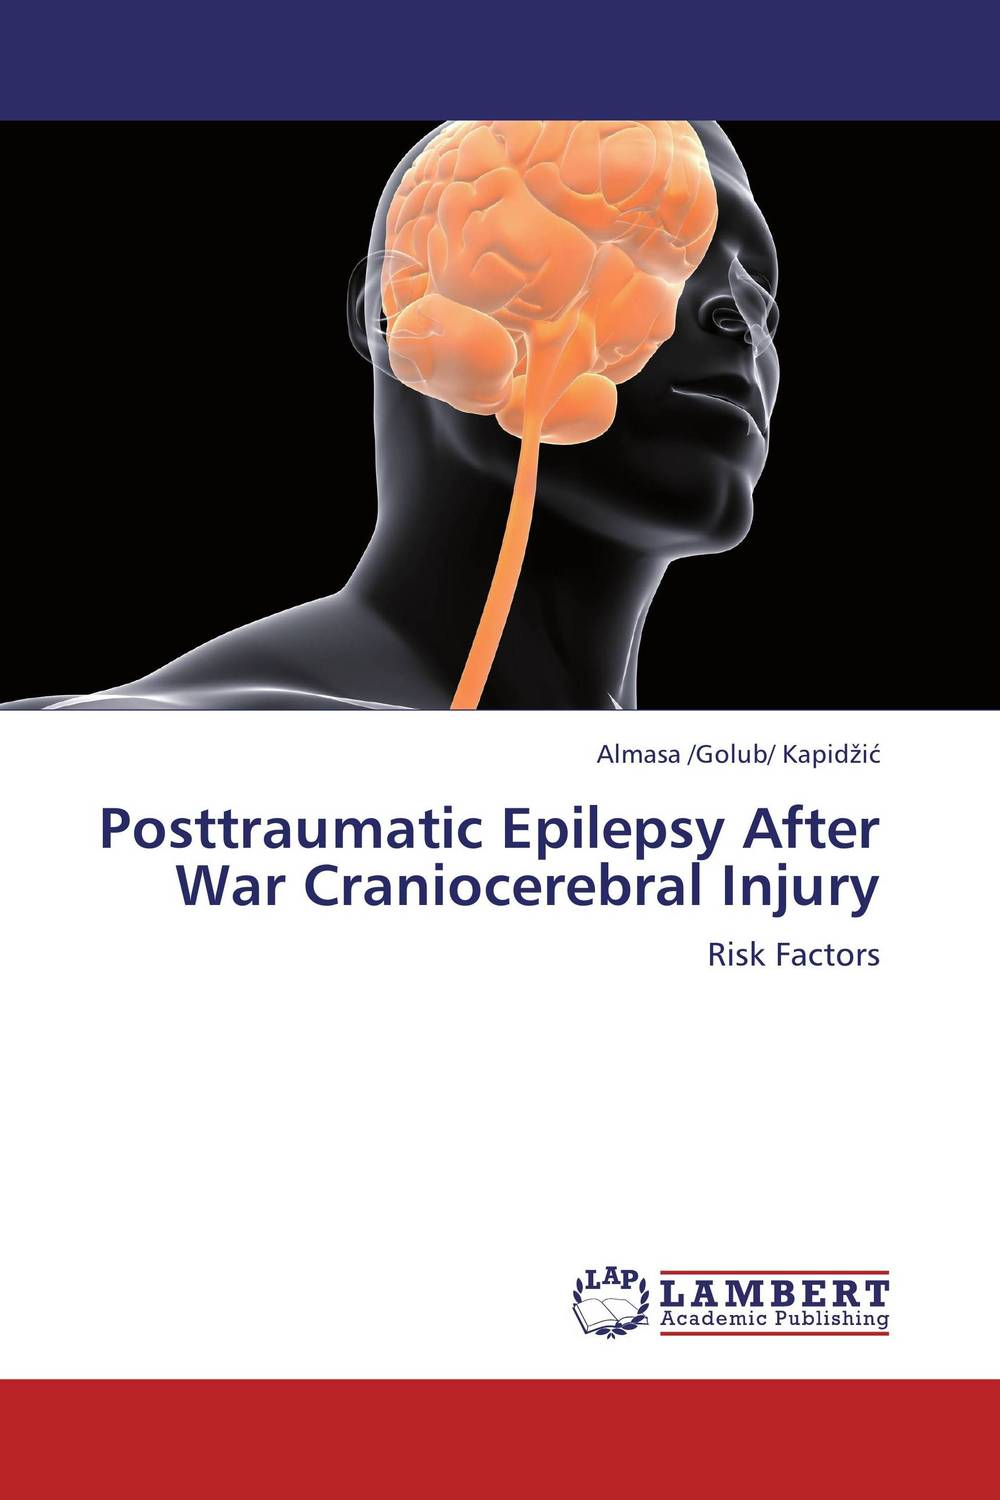 Posttraumatic Epilepsy After War Craniocerebral Injury epilepsy in children psychological concerns